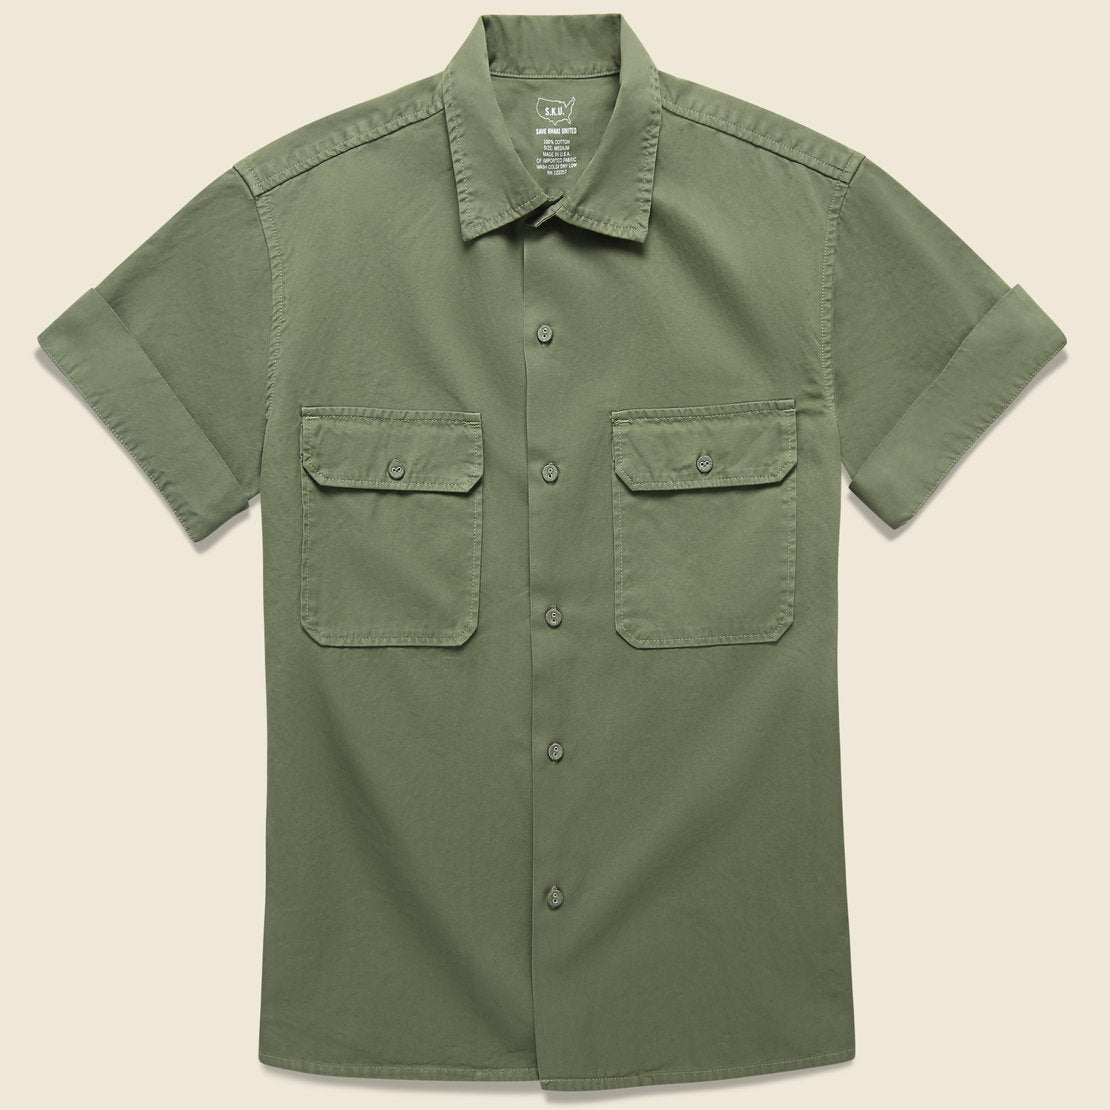 Save Khaki Light Twill Camp Shirt - Olive Drab